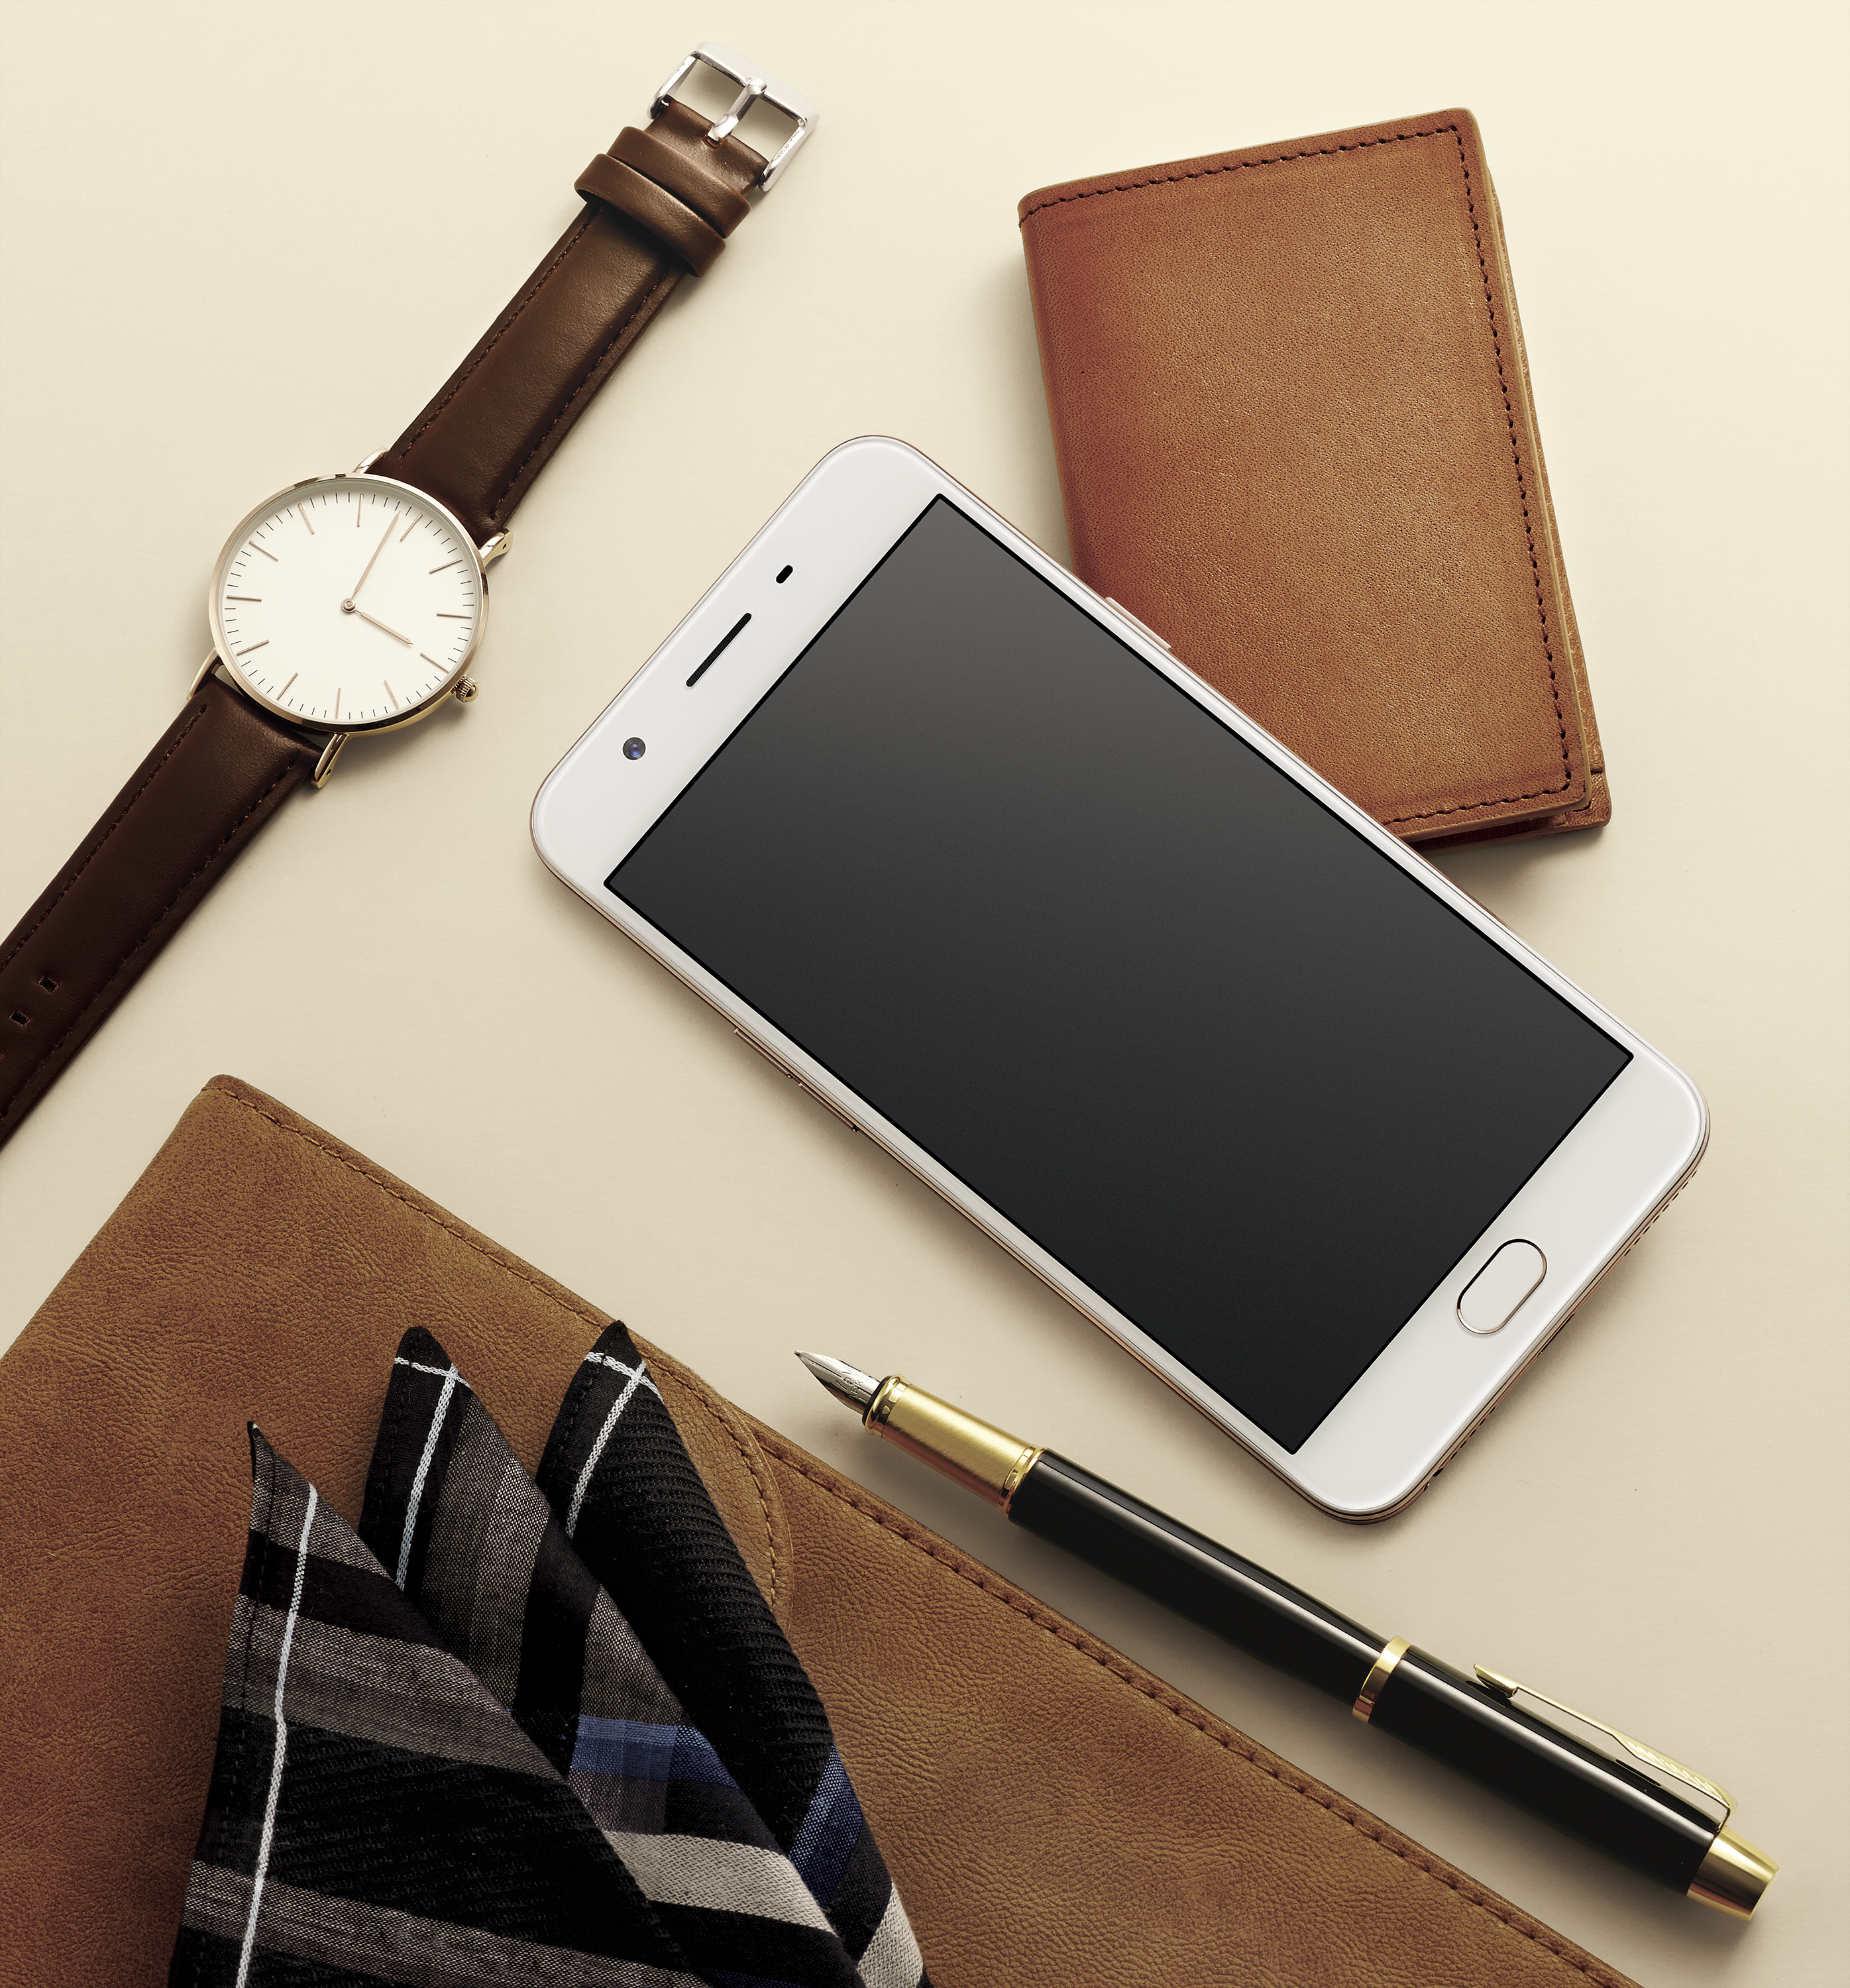 Oppo Launches F1s With A 16 Mp Selfie Camera Huffpost India New